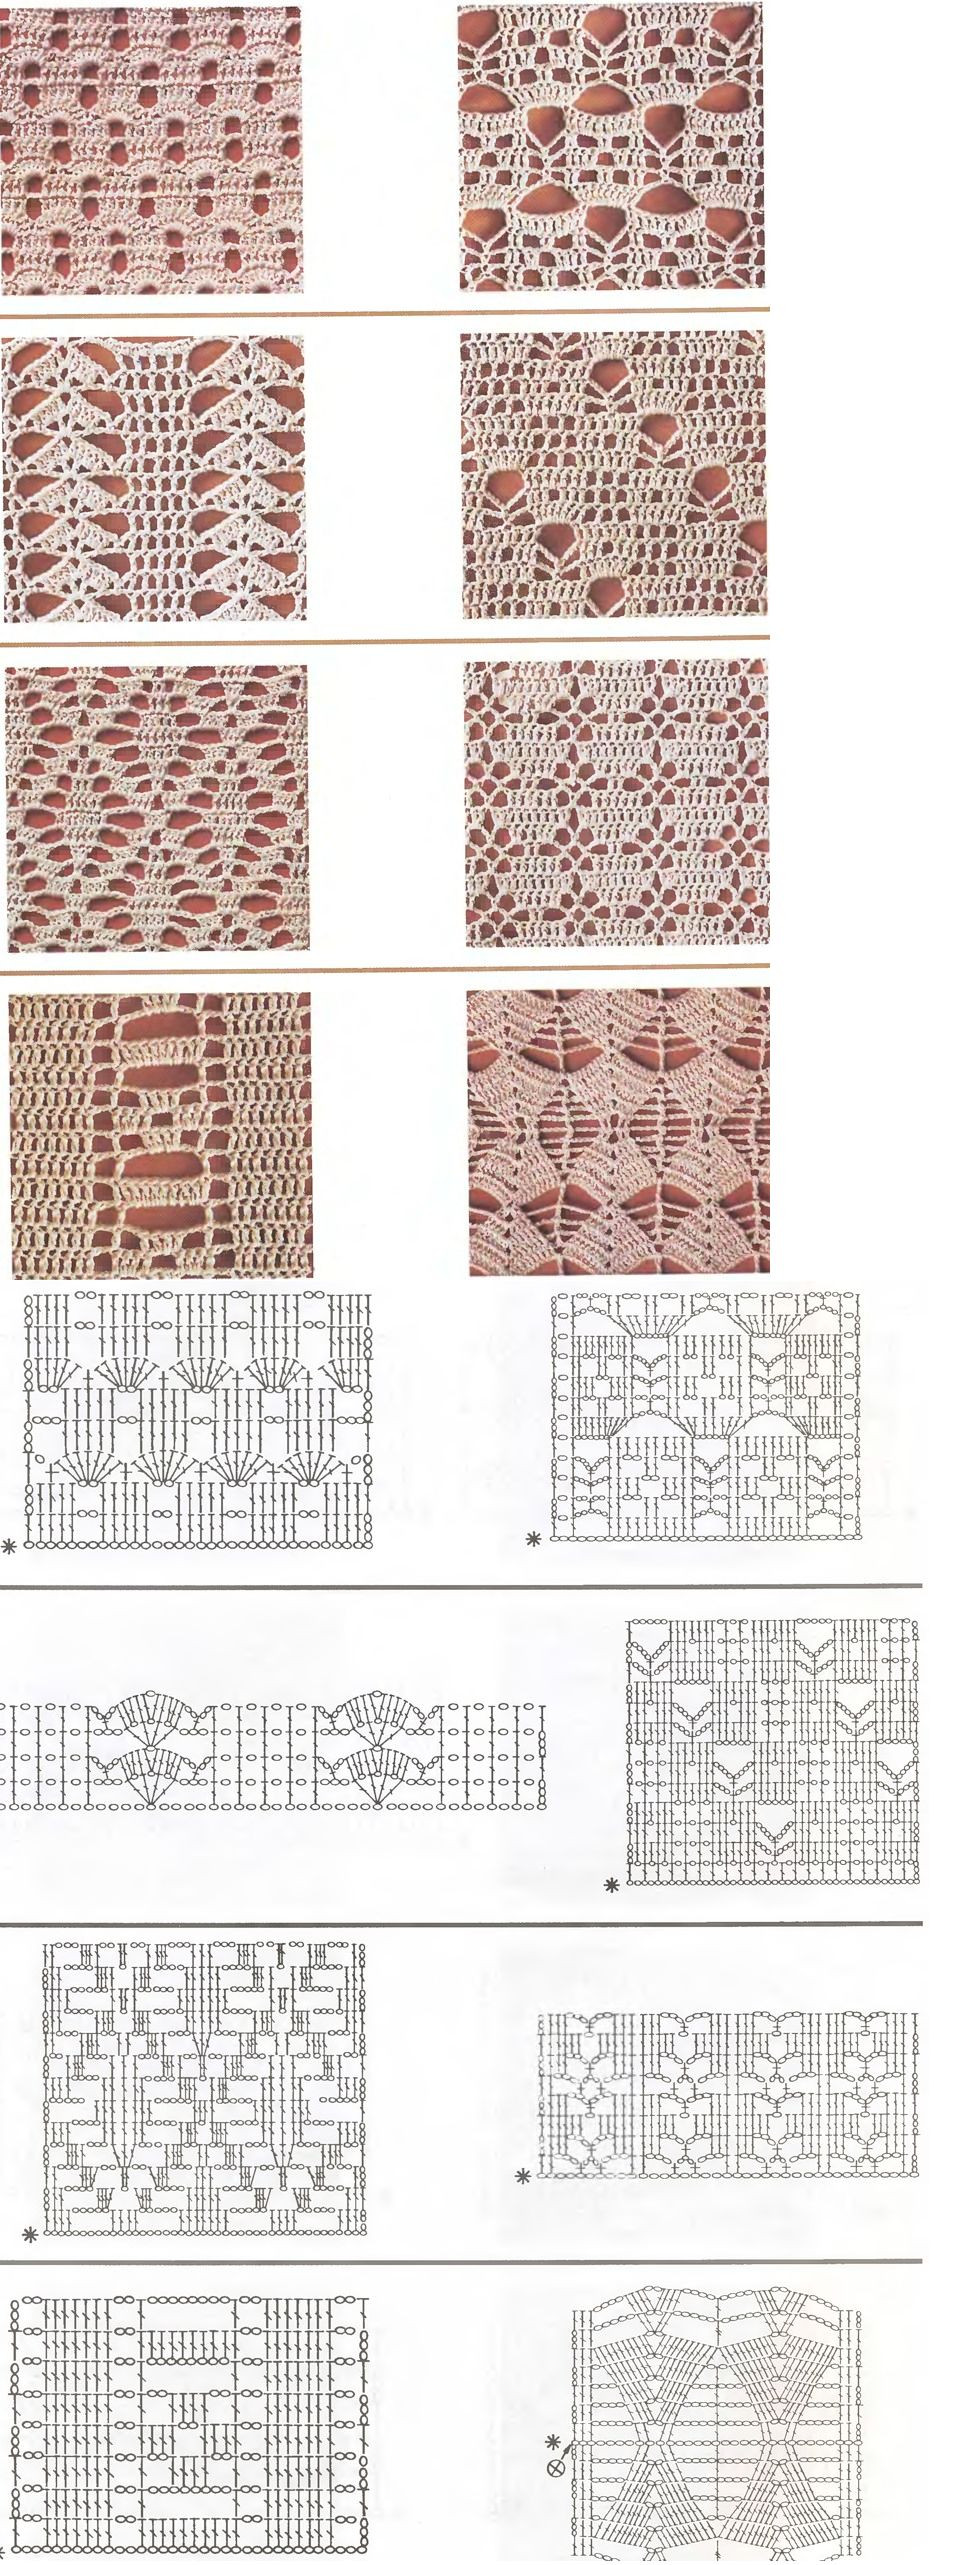 Luxury 1000 Images About Haaksteken On Pinterest Crochet Stitches Diagram Of Amazing 47 Ideas Crochet Stitches Diagram